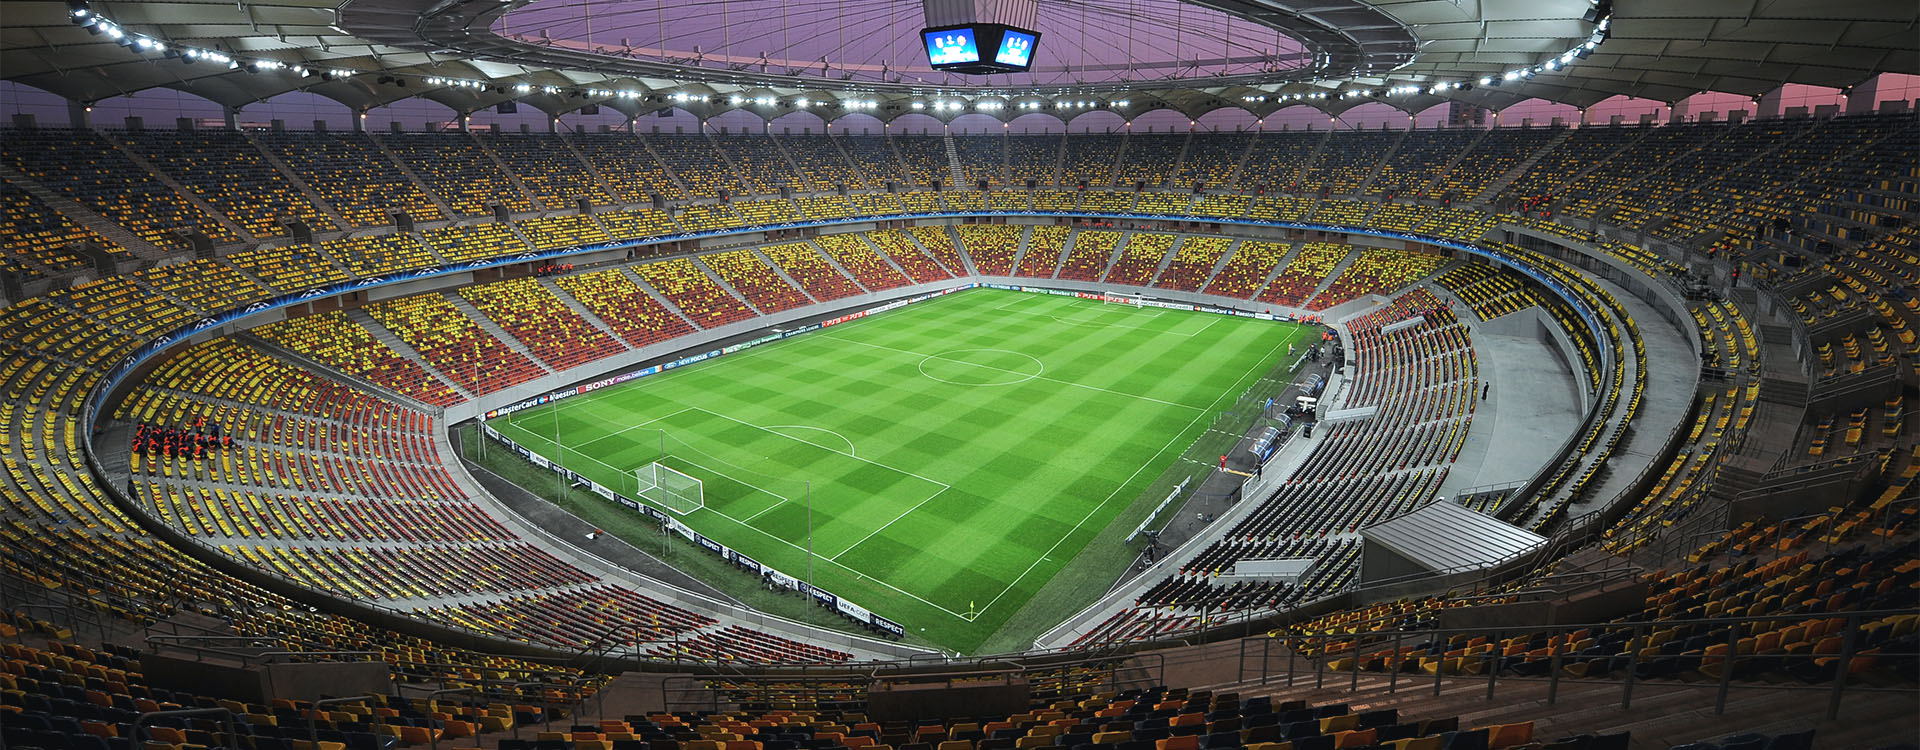 bnr-National-Arena-Romania